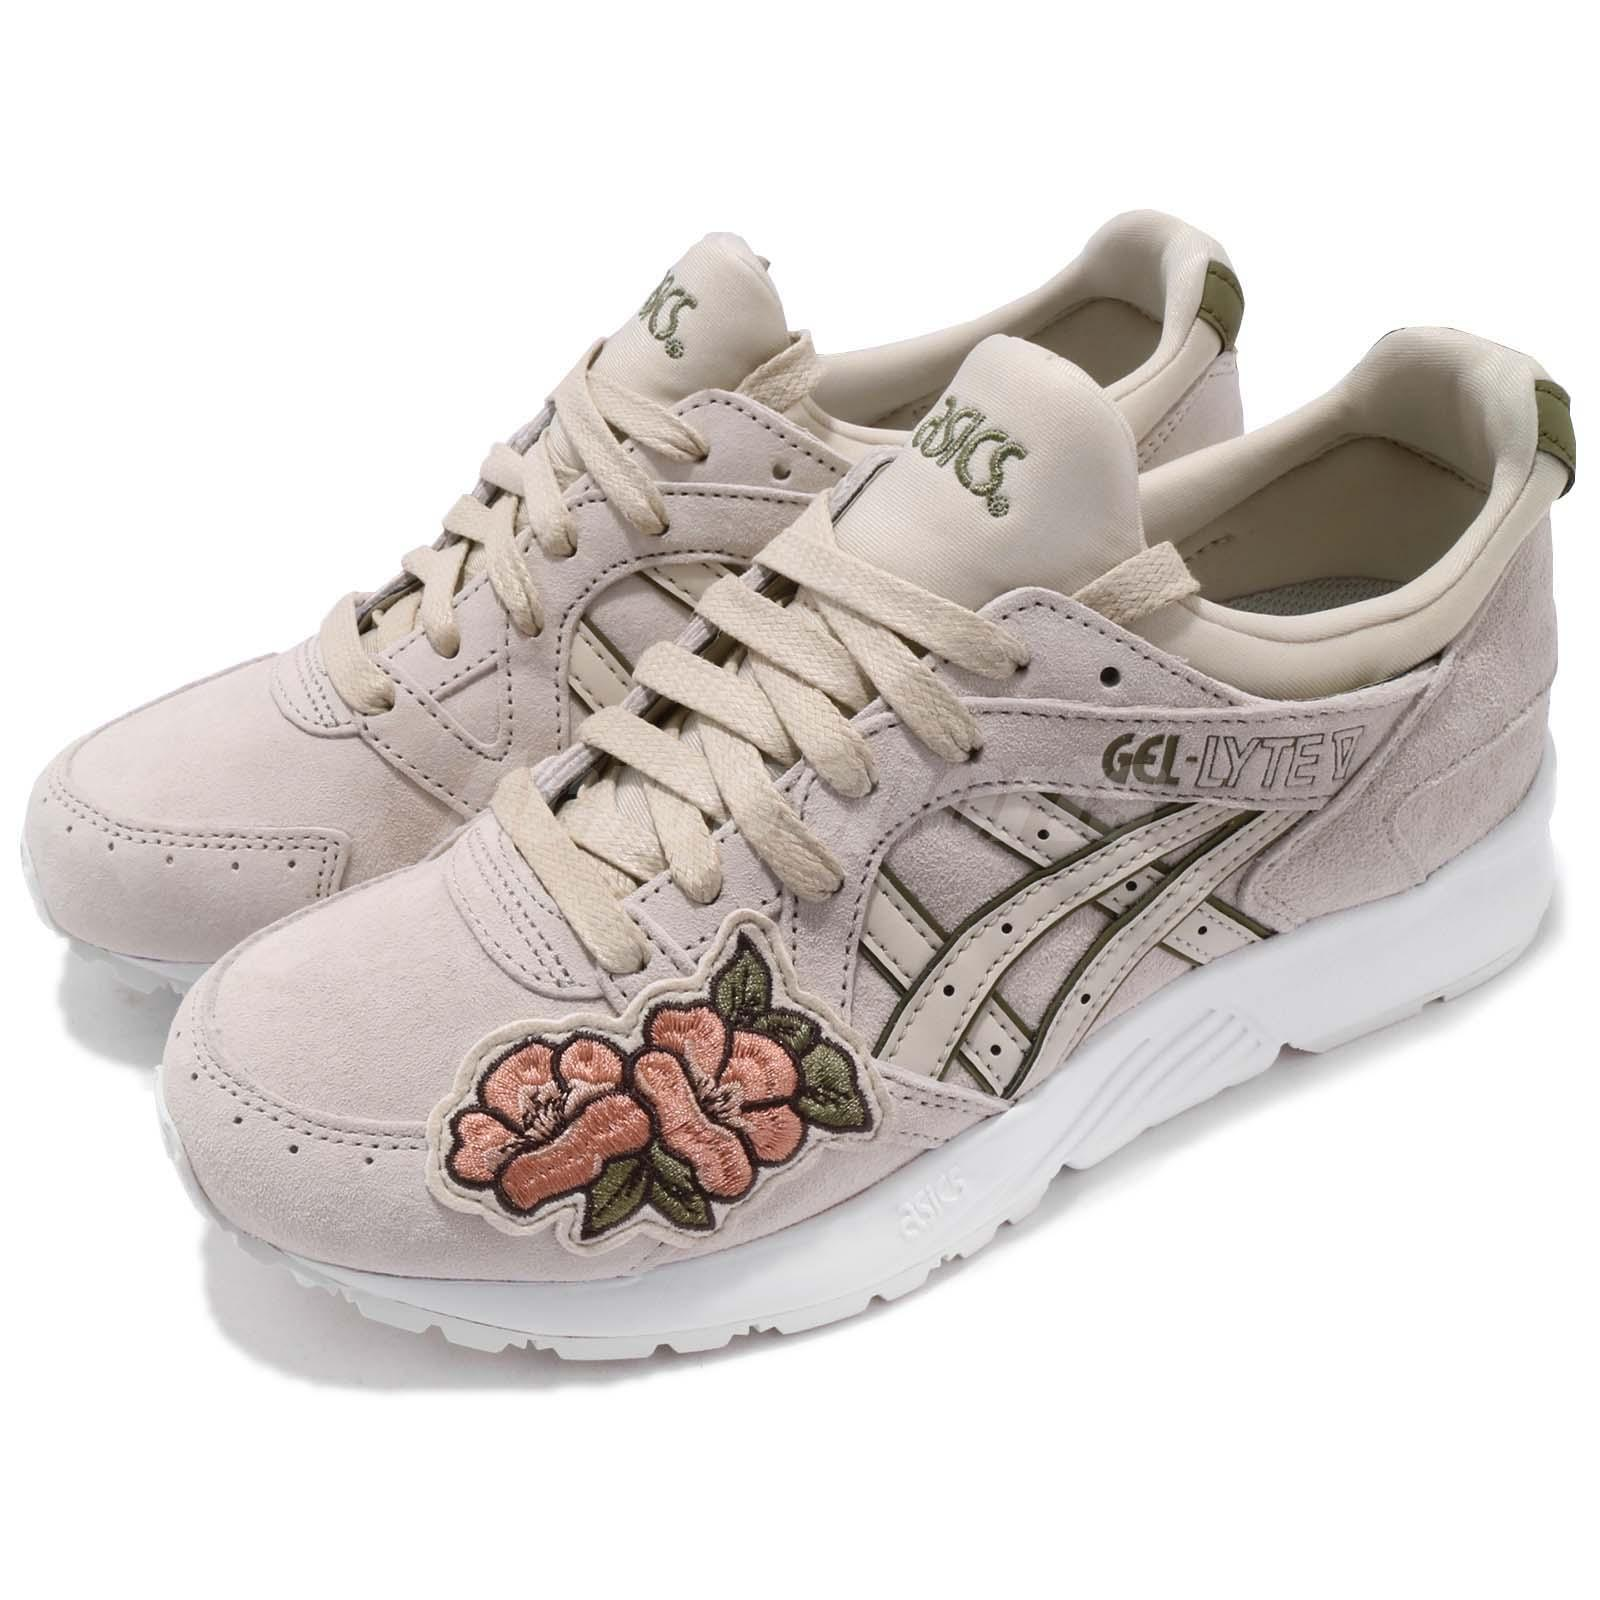 804383df9e Details about Asics Tiger Gel-Lyte V Birch White Floral Men Women Running  Sneakers H8G5L-0202